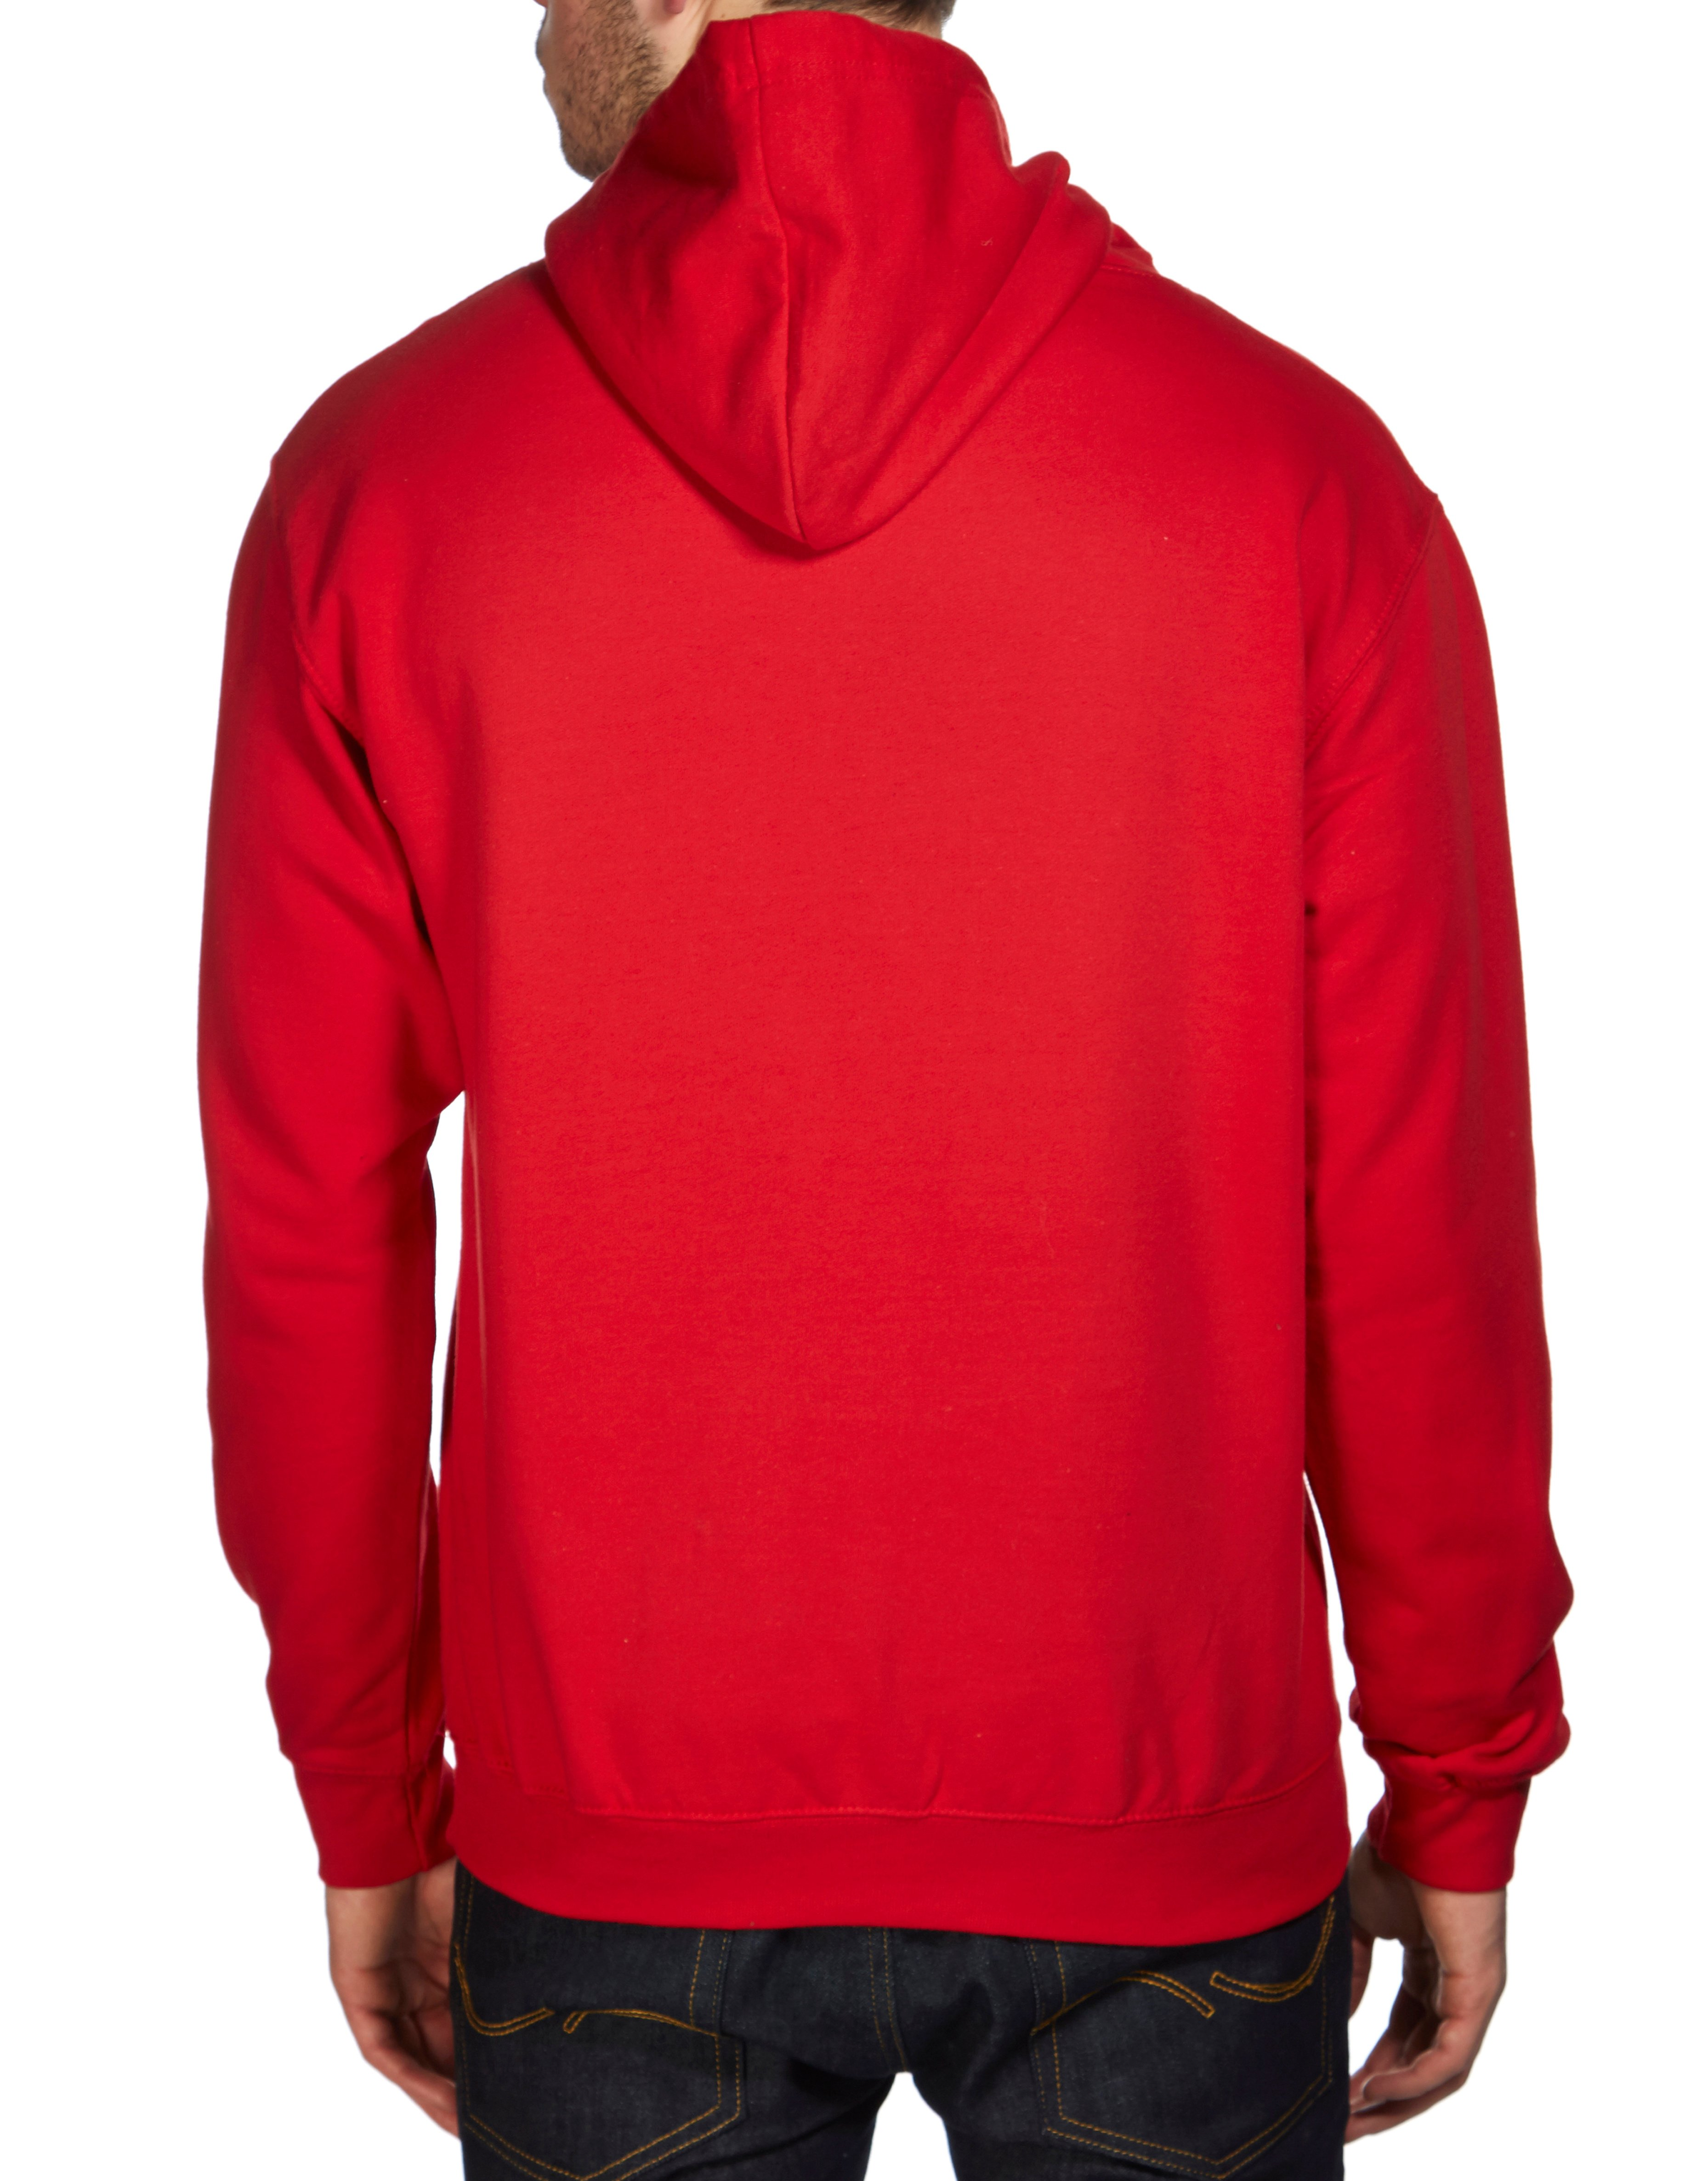 Official Team Wales Arch Hoodie